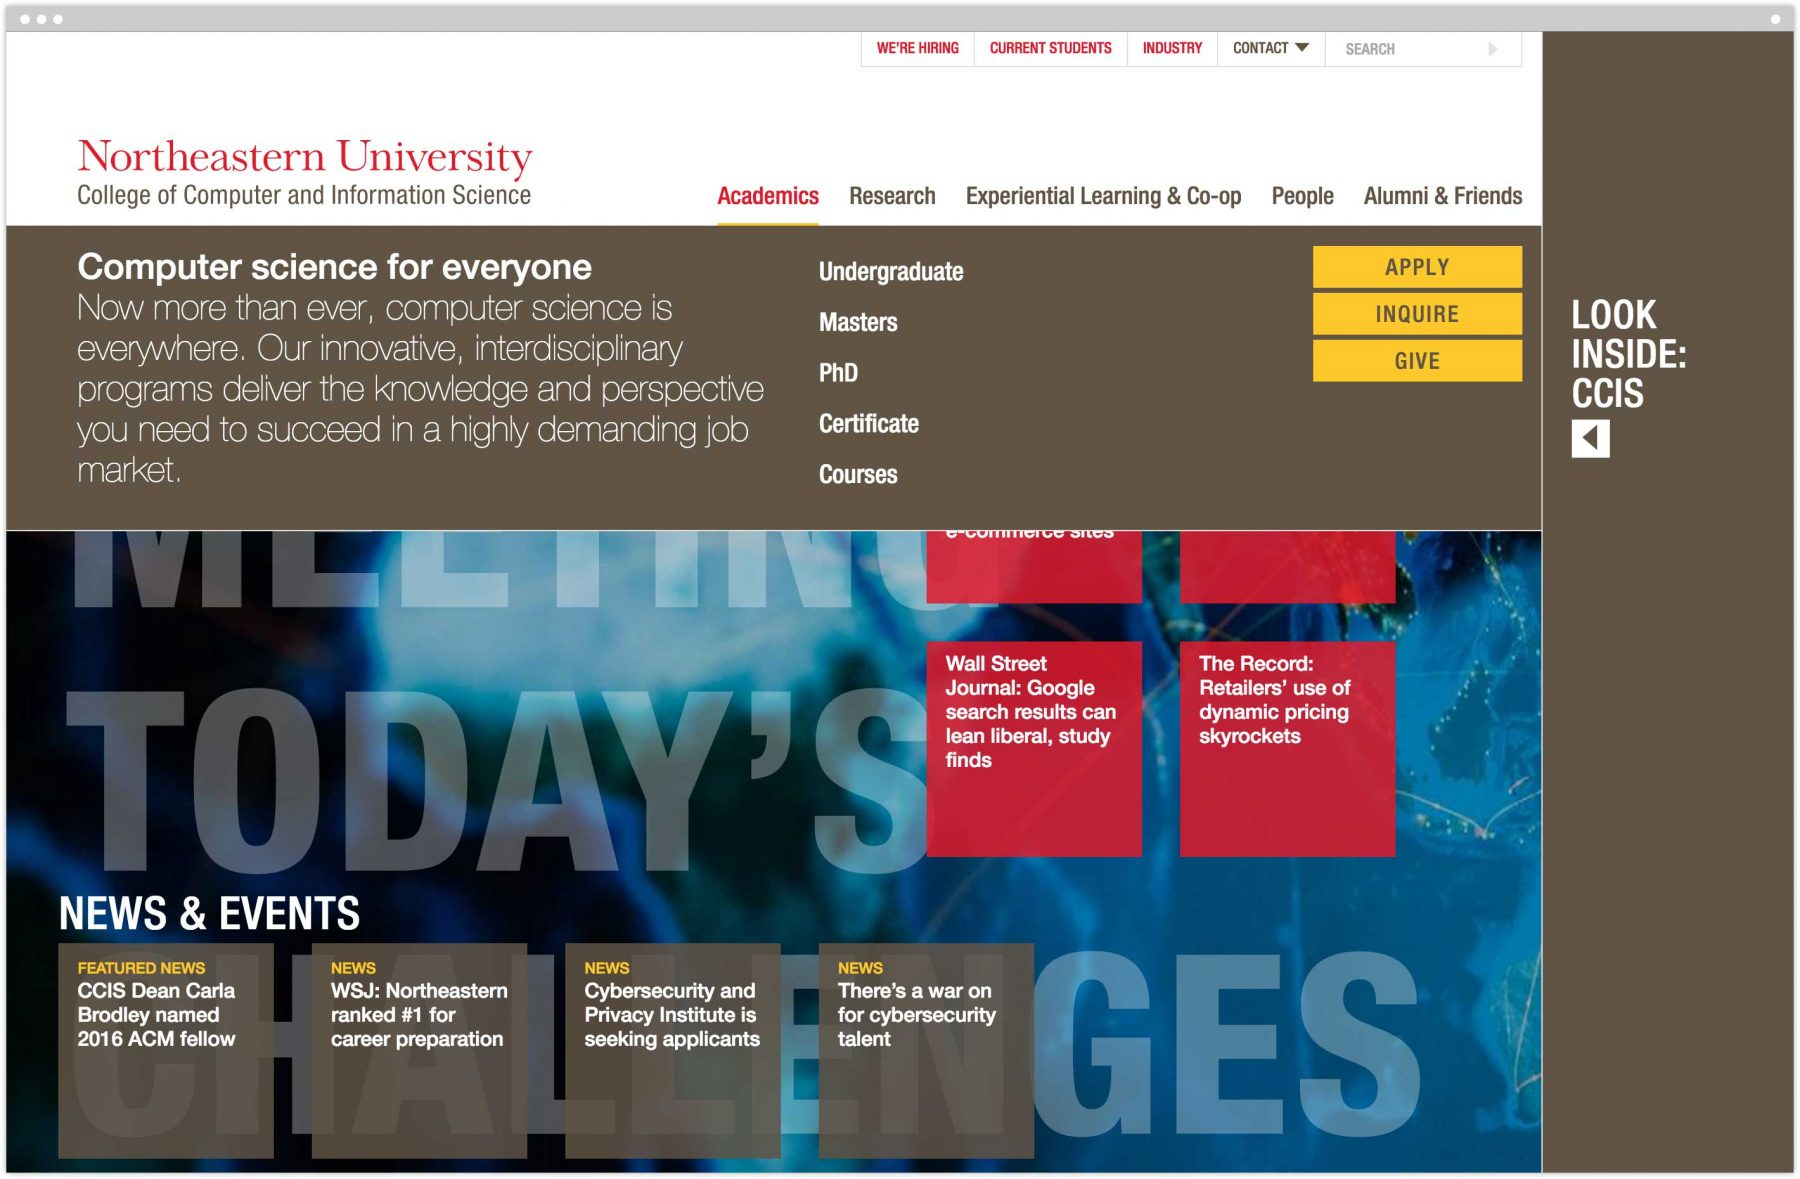 Northeastern University College of Computer and Information Science homepage